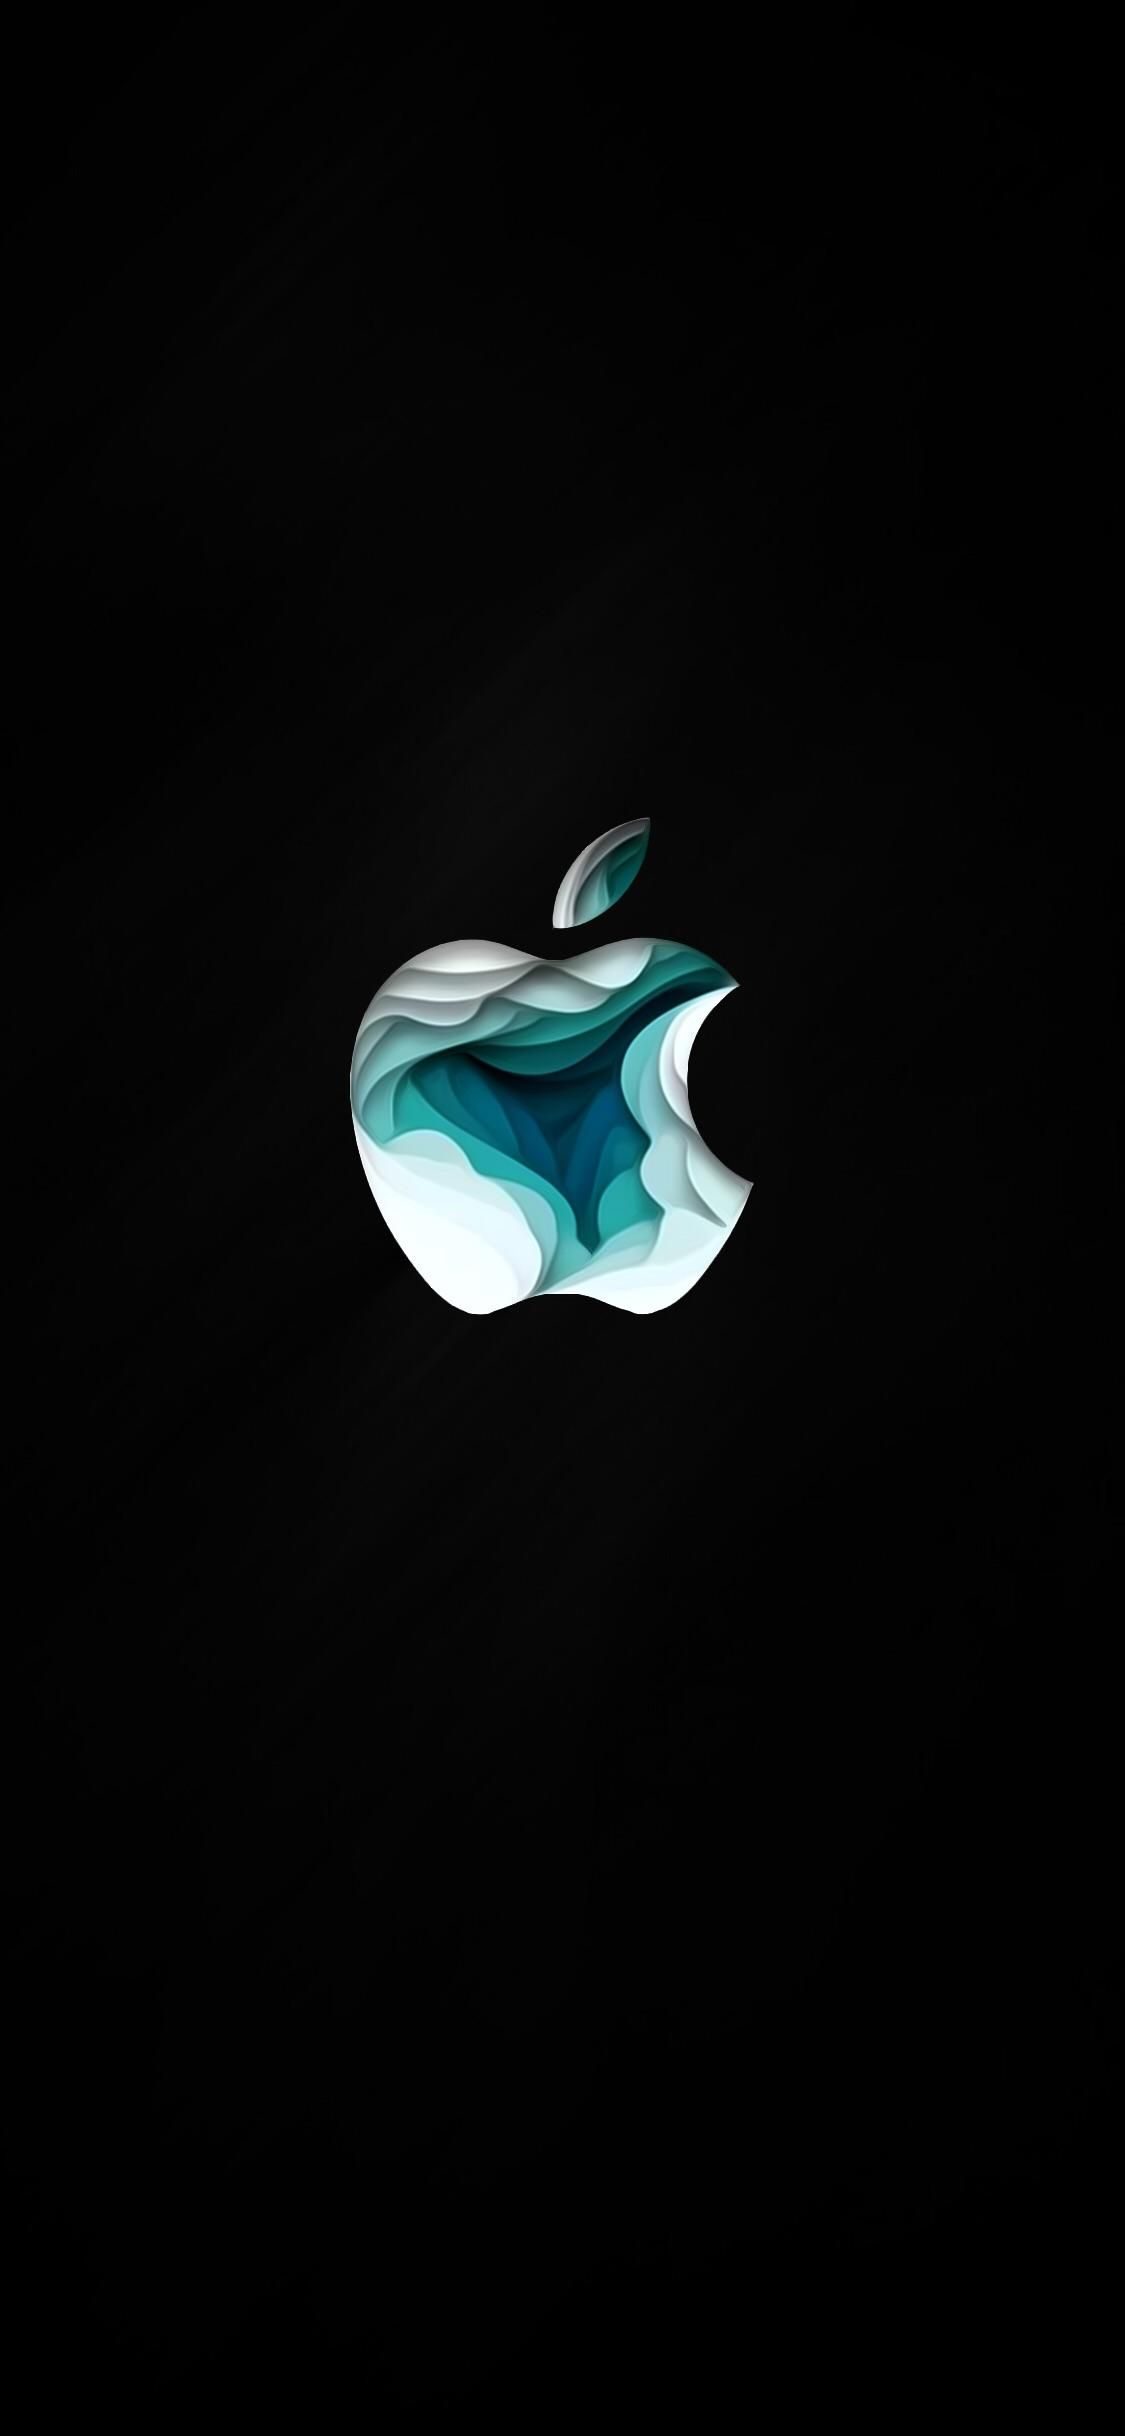 Apple Special Event Logo. True Black. Apple logo